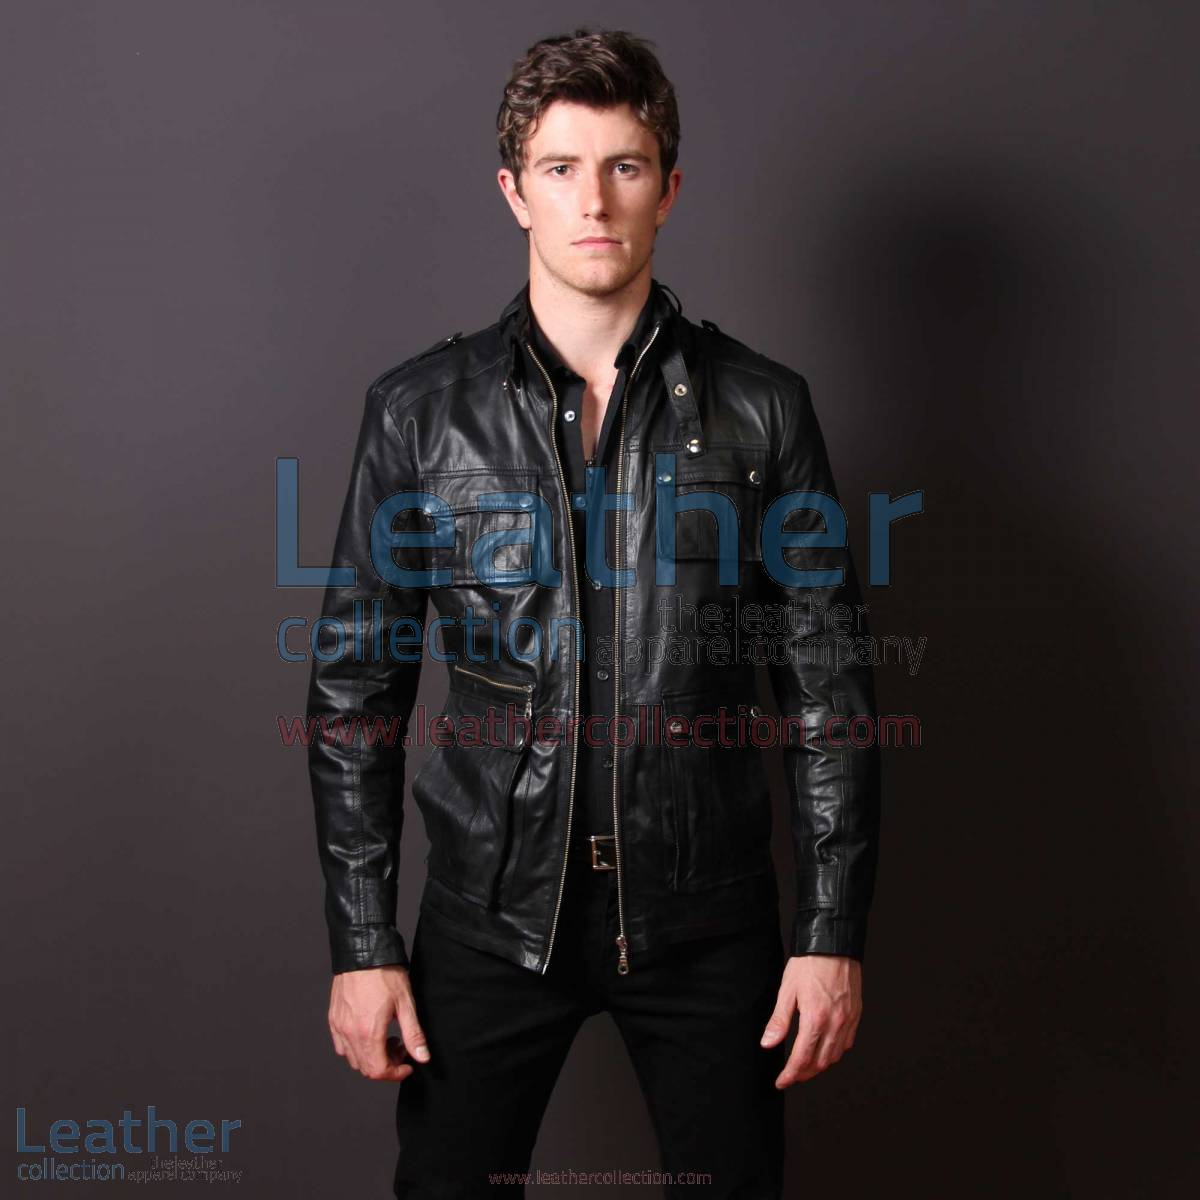 Men Leather Fashion Rockwell Jacket | leather fashion jacket,rockwell jacket